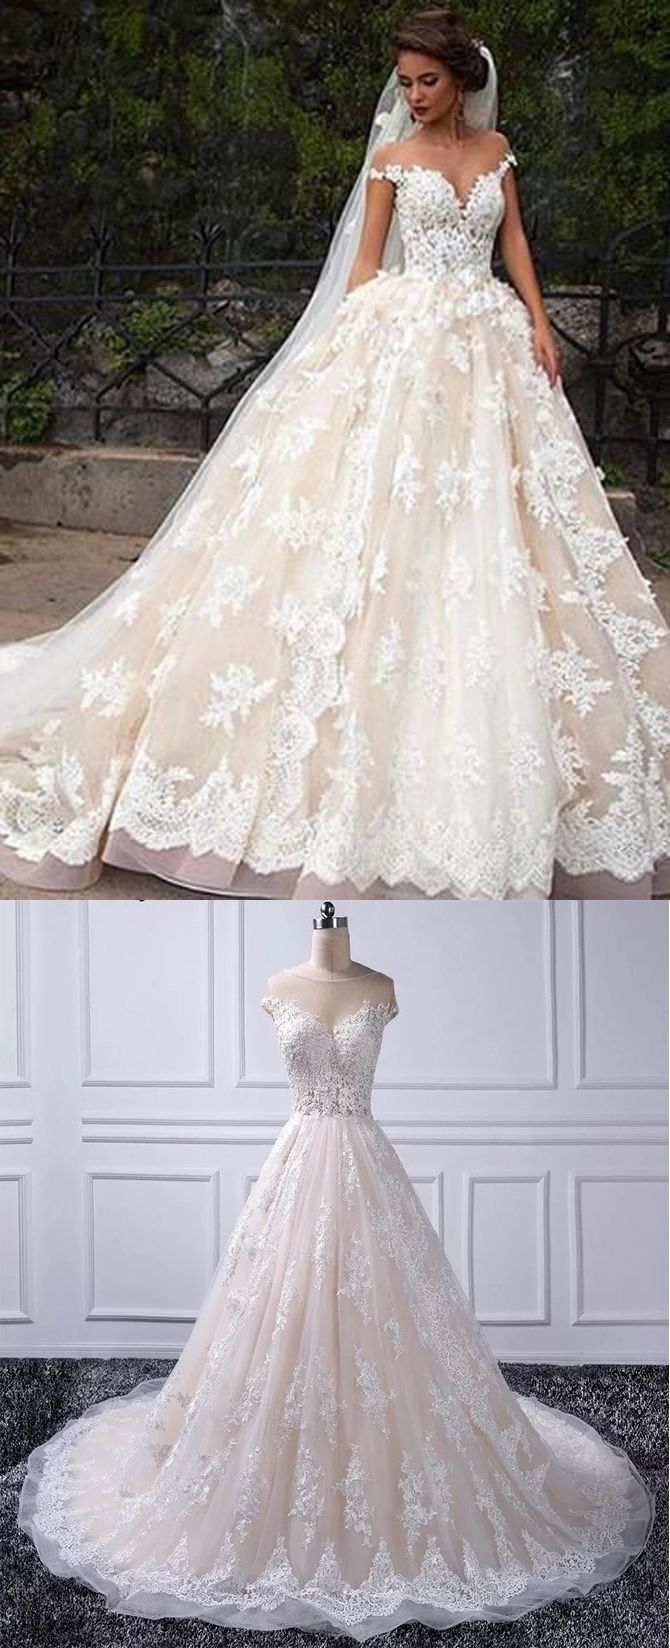 Romantic jewel cap sleeves ball gown wedding dress with lace top